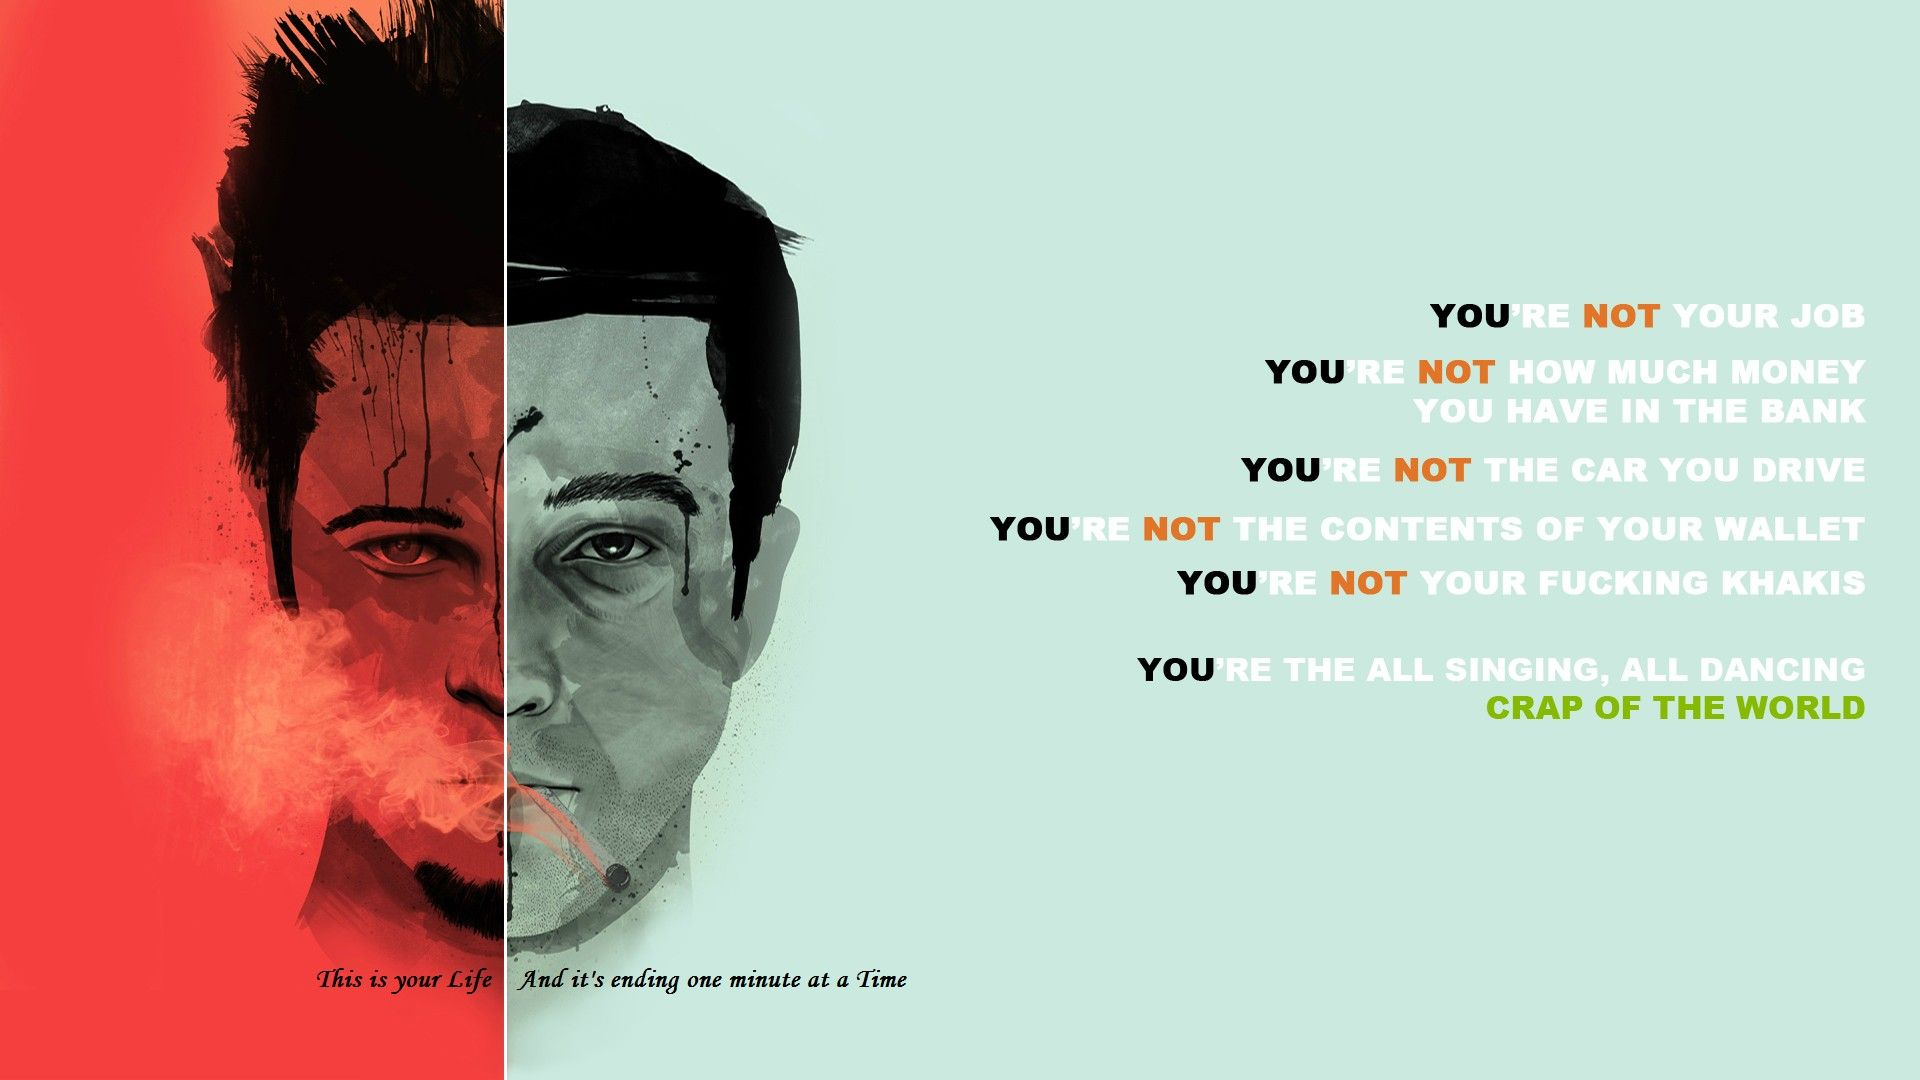 You Are Not Your Job Fight Club Fight Club Quotes Fight Club 1999 Fight club desktop wallpaper hd